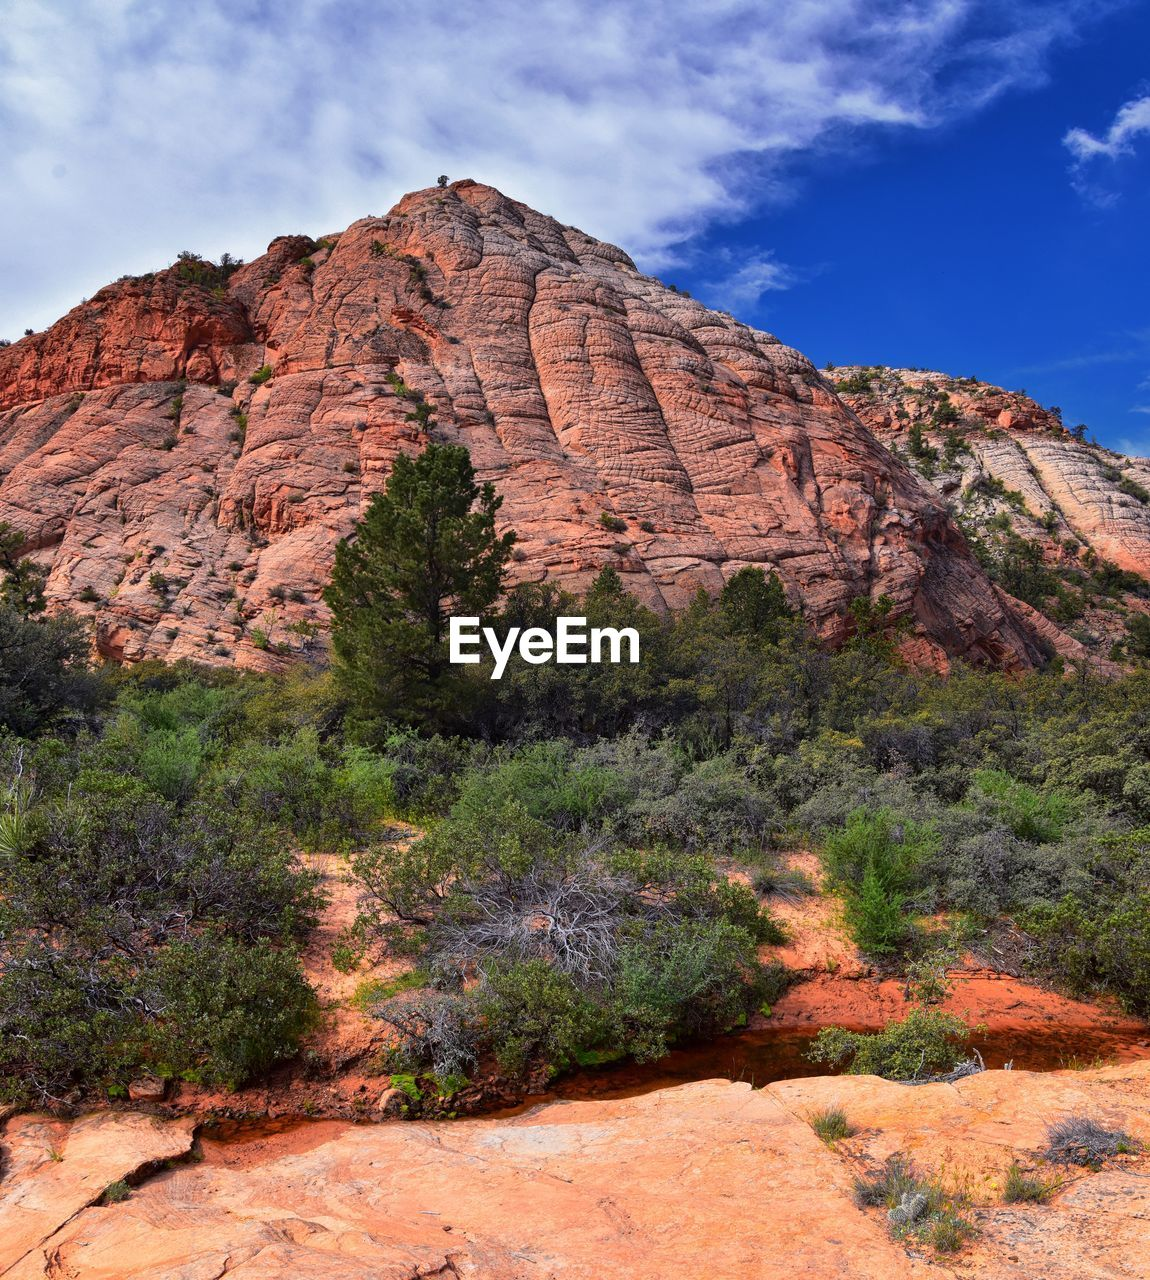 sky, rock, rock formation, rock - object, mountain, geology, scenics - nature, non-urban scene, solid, tranquil scene, physical geography, beauty in nature, nature, environment, landscape, tranquility, no people, day, cloud - sky, plant, mountain range, formation, eroded, outdoors, arid climate, climate, mountain peak, sandstone